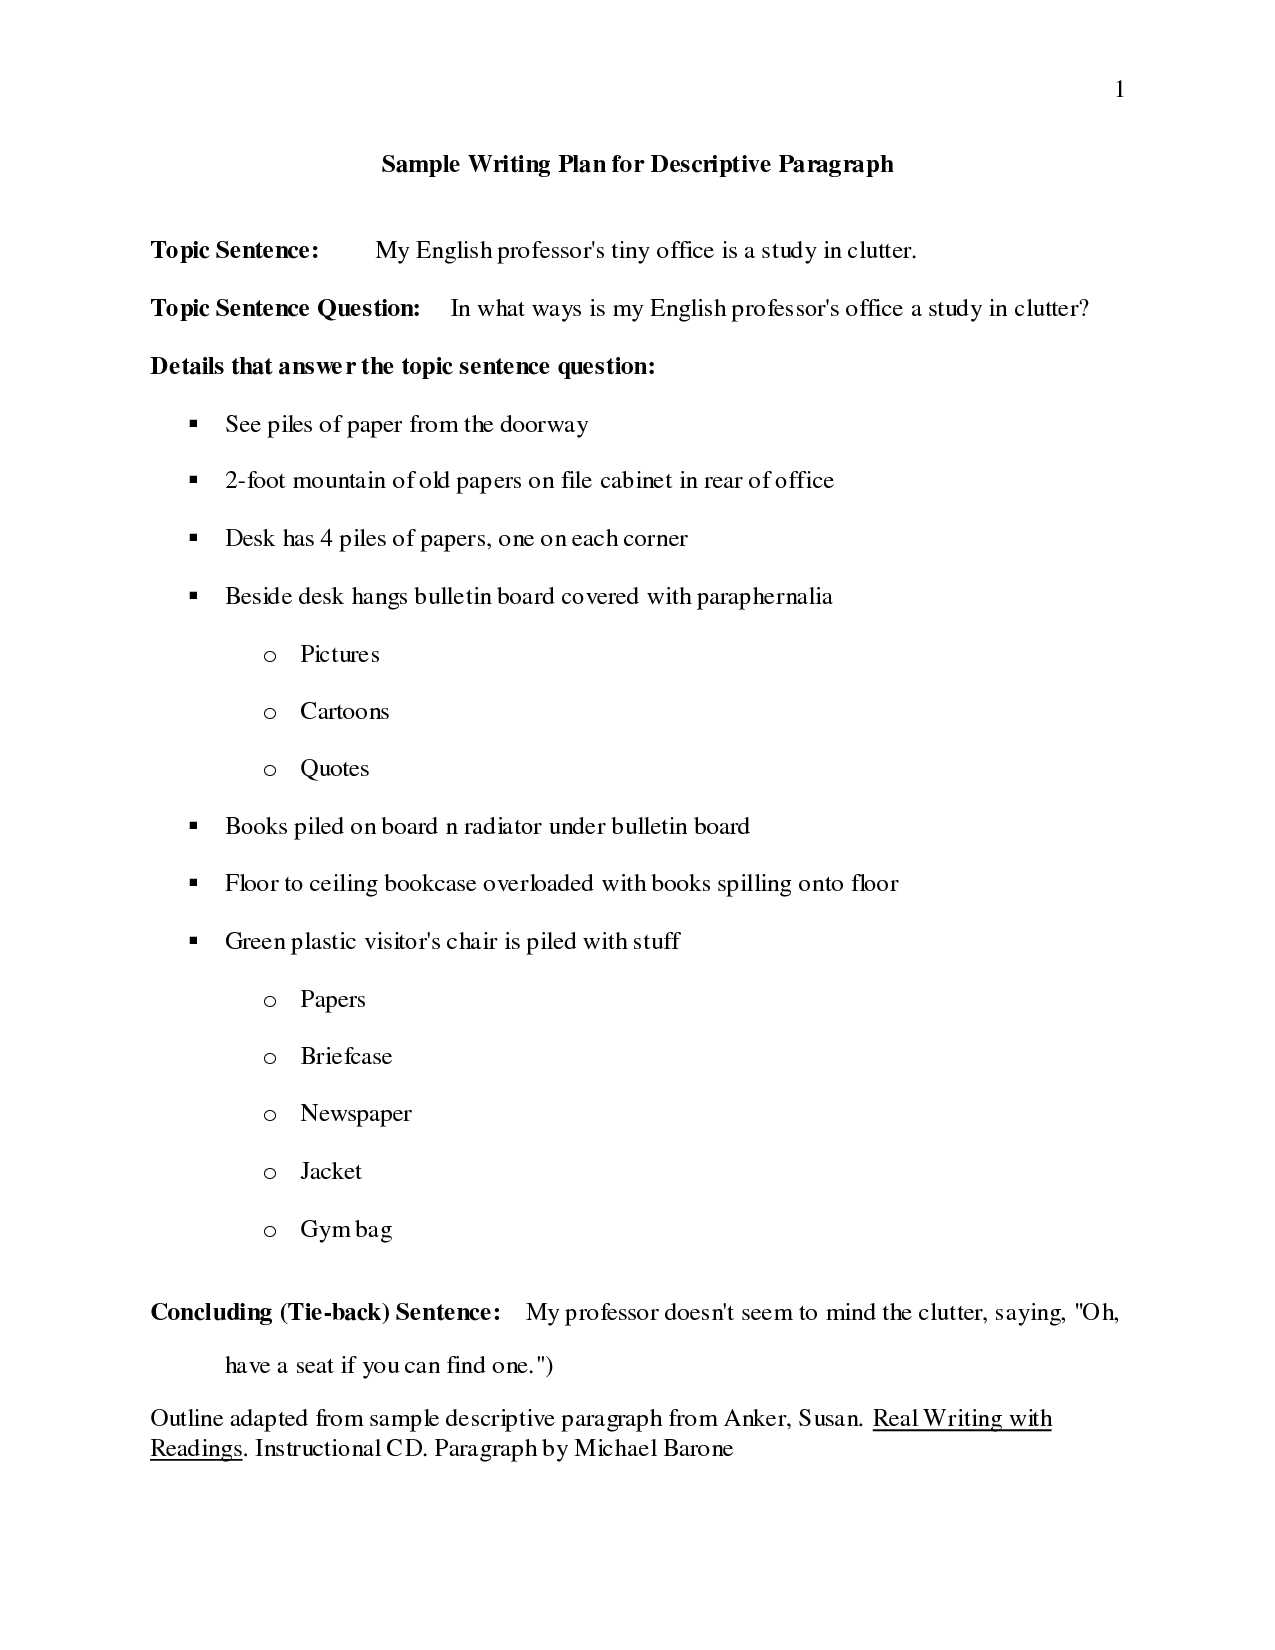 Anatomy Of the Constitution Worksheet as Well as Essay Outline Samples Business Essay Outline Research Paper